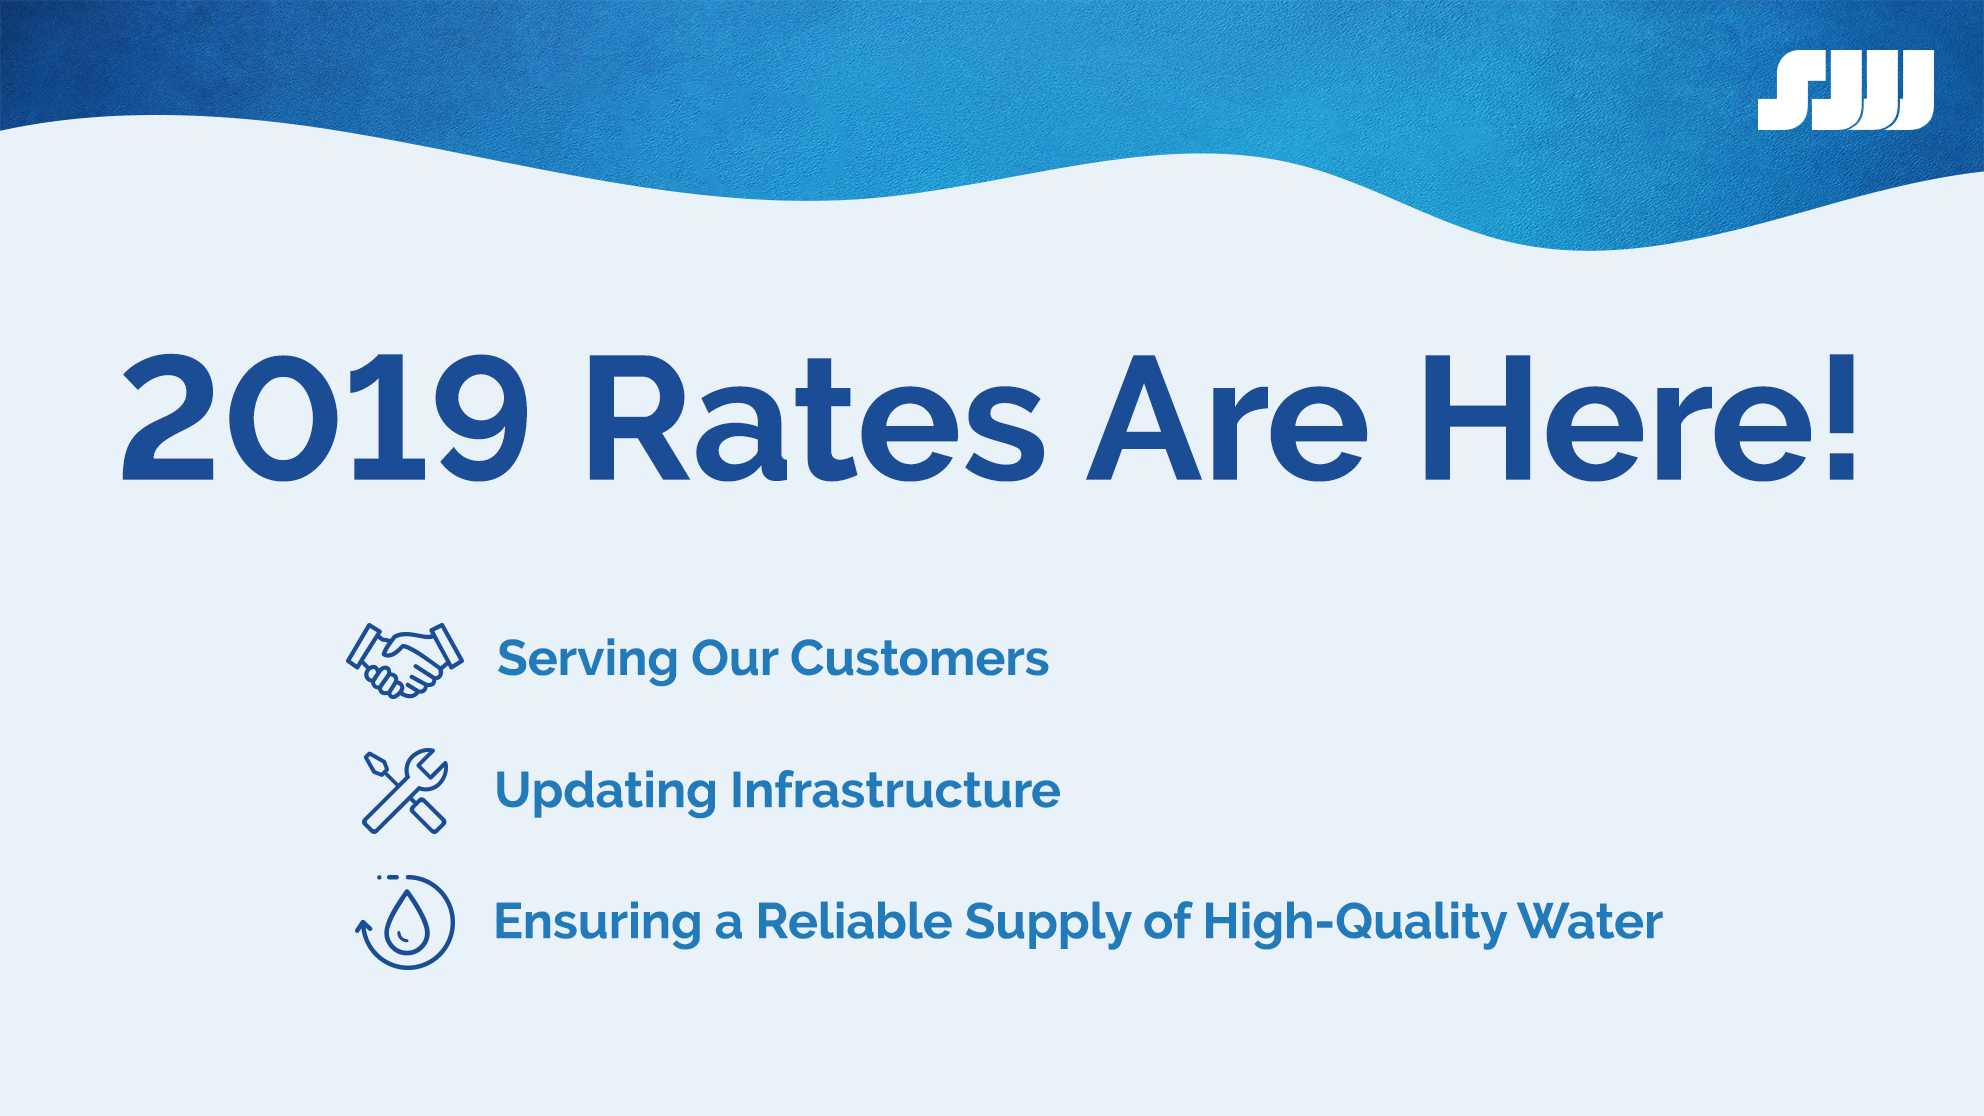 2019 Rates Are Here - Serving our Customers, Updating Infrastructure, Ensuring a reliable supply of high-quality water